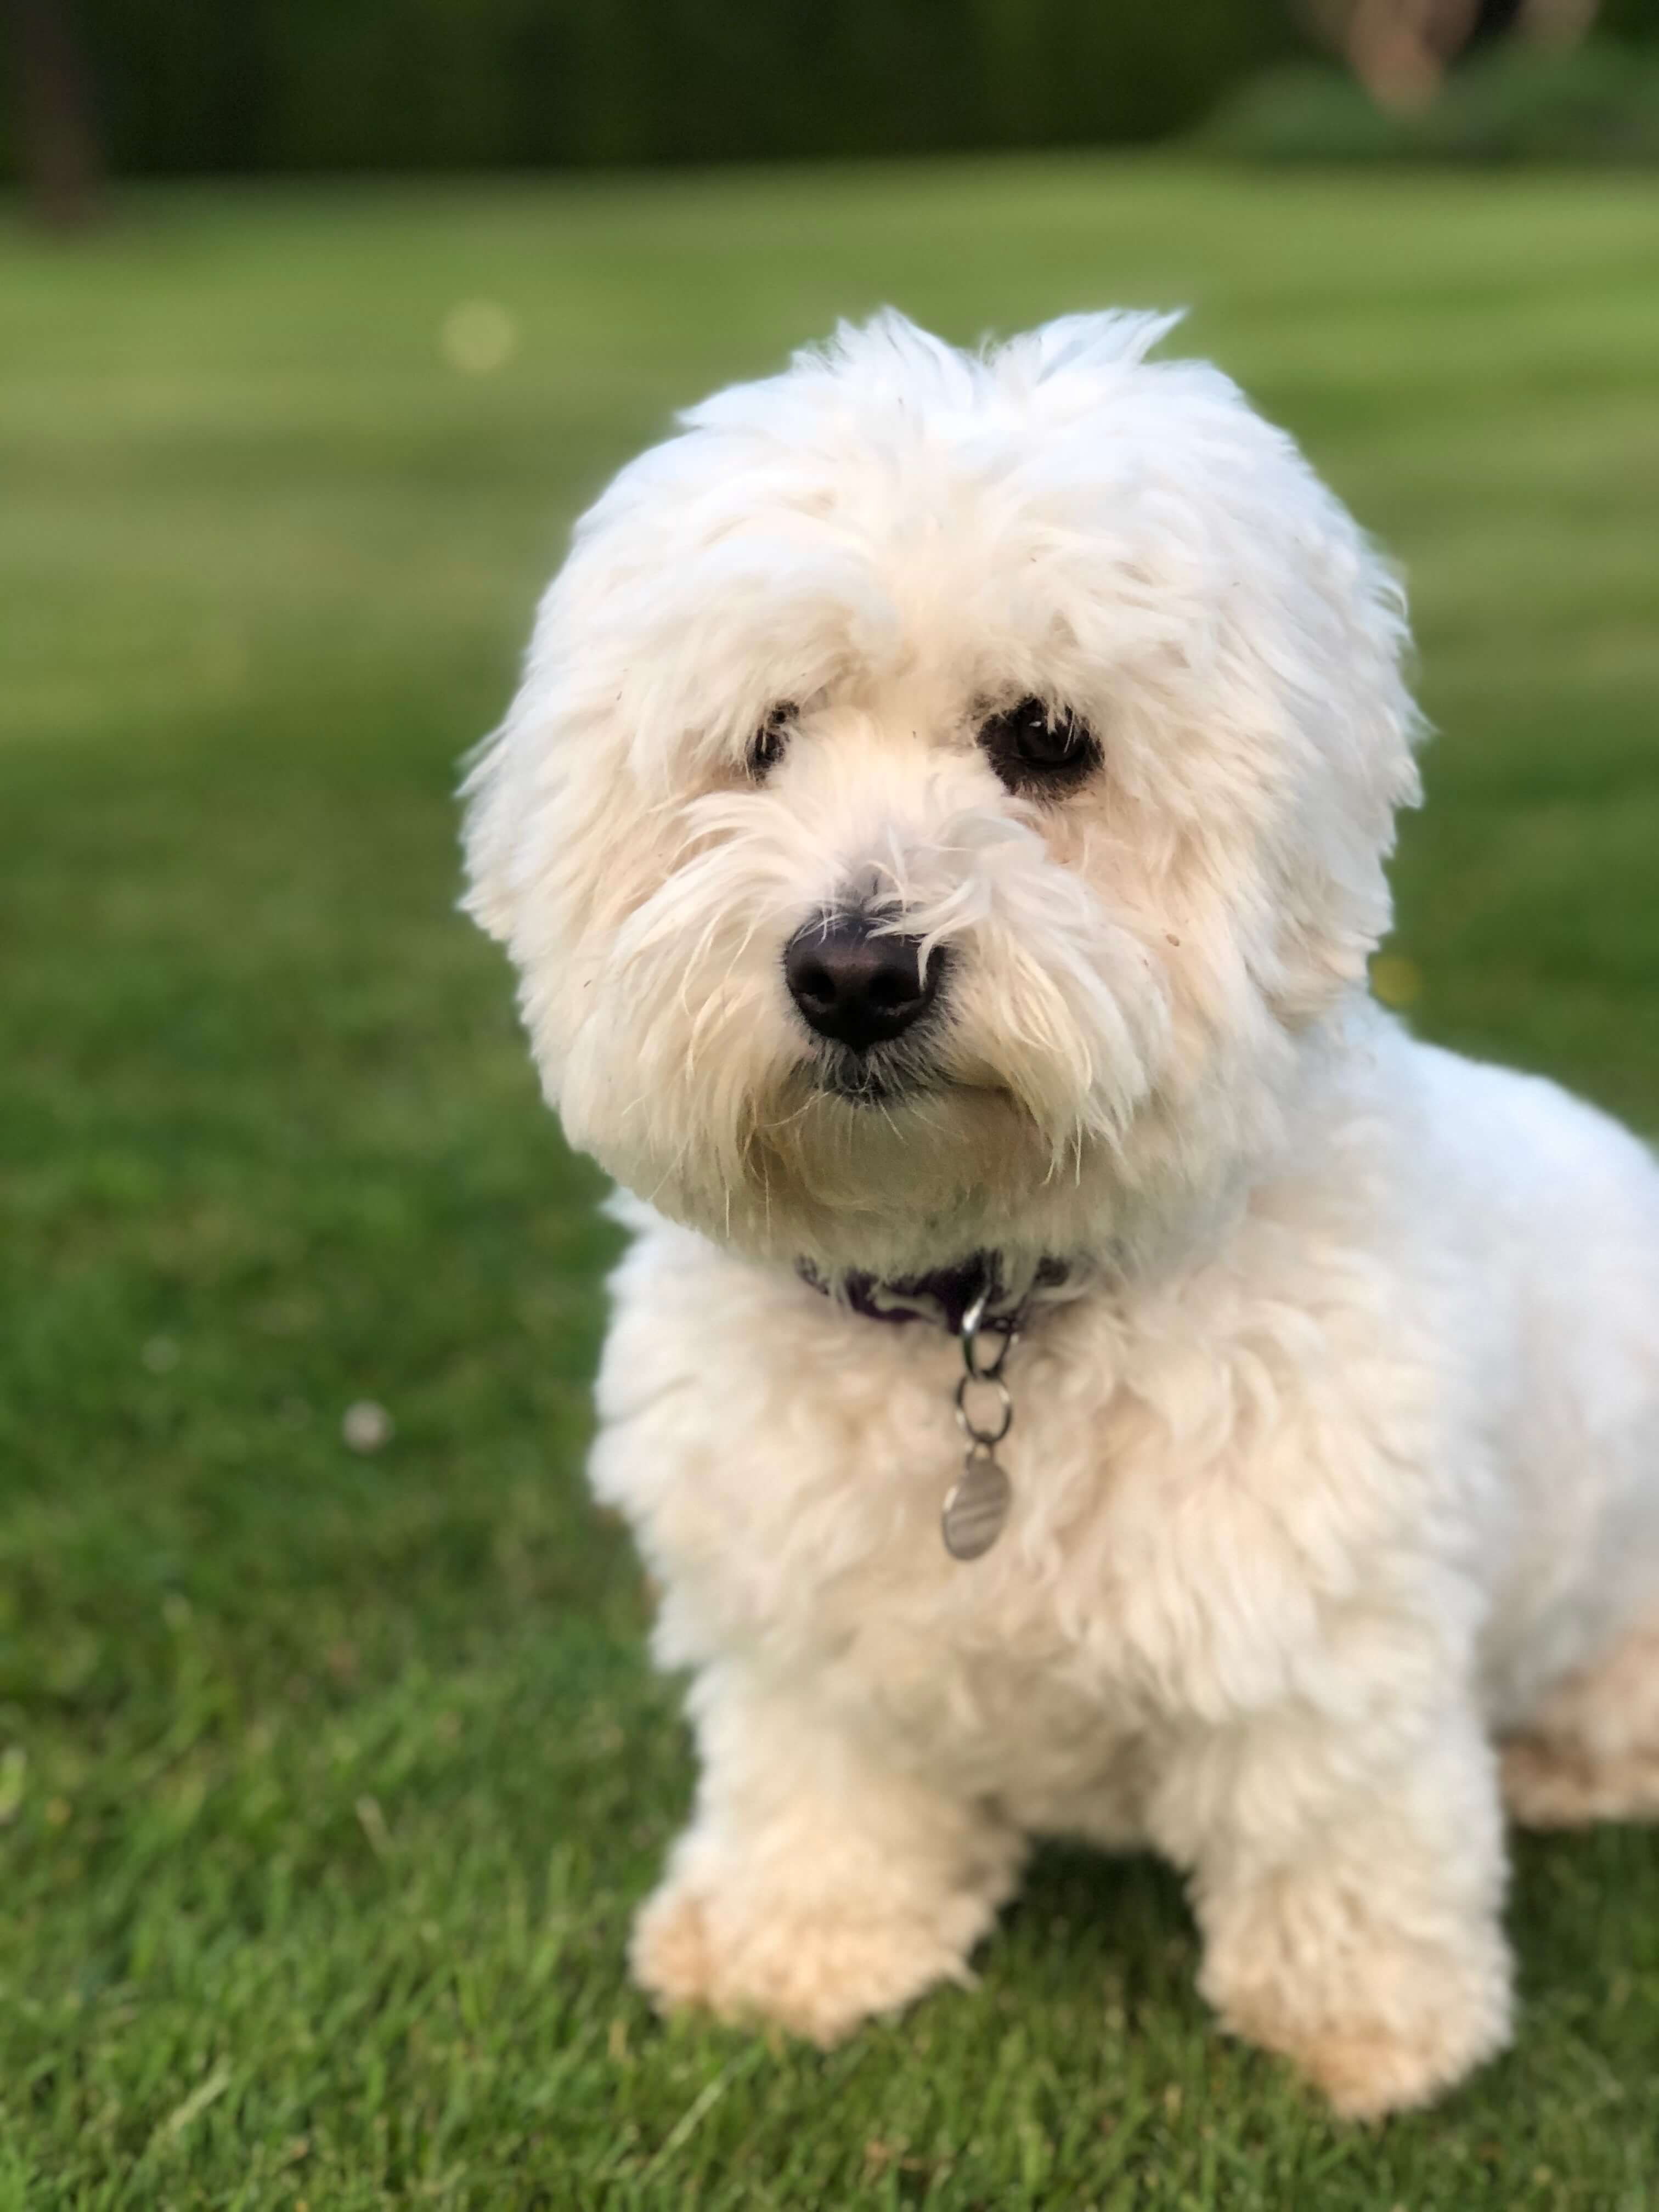 Image may contain: Lawn, Poodle, Terrier, Grass, Plant, Dog, Mammal, Pet, Animal, Canine